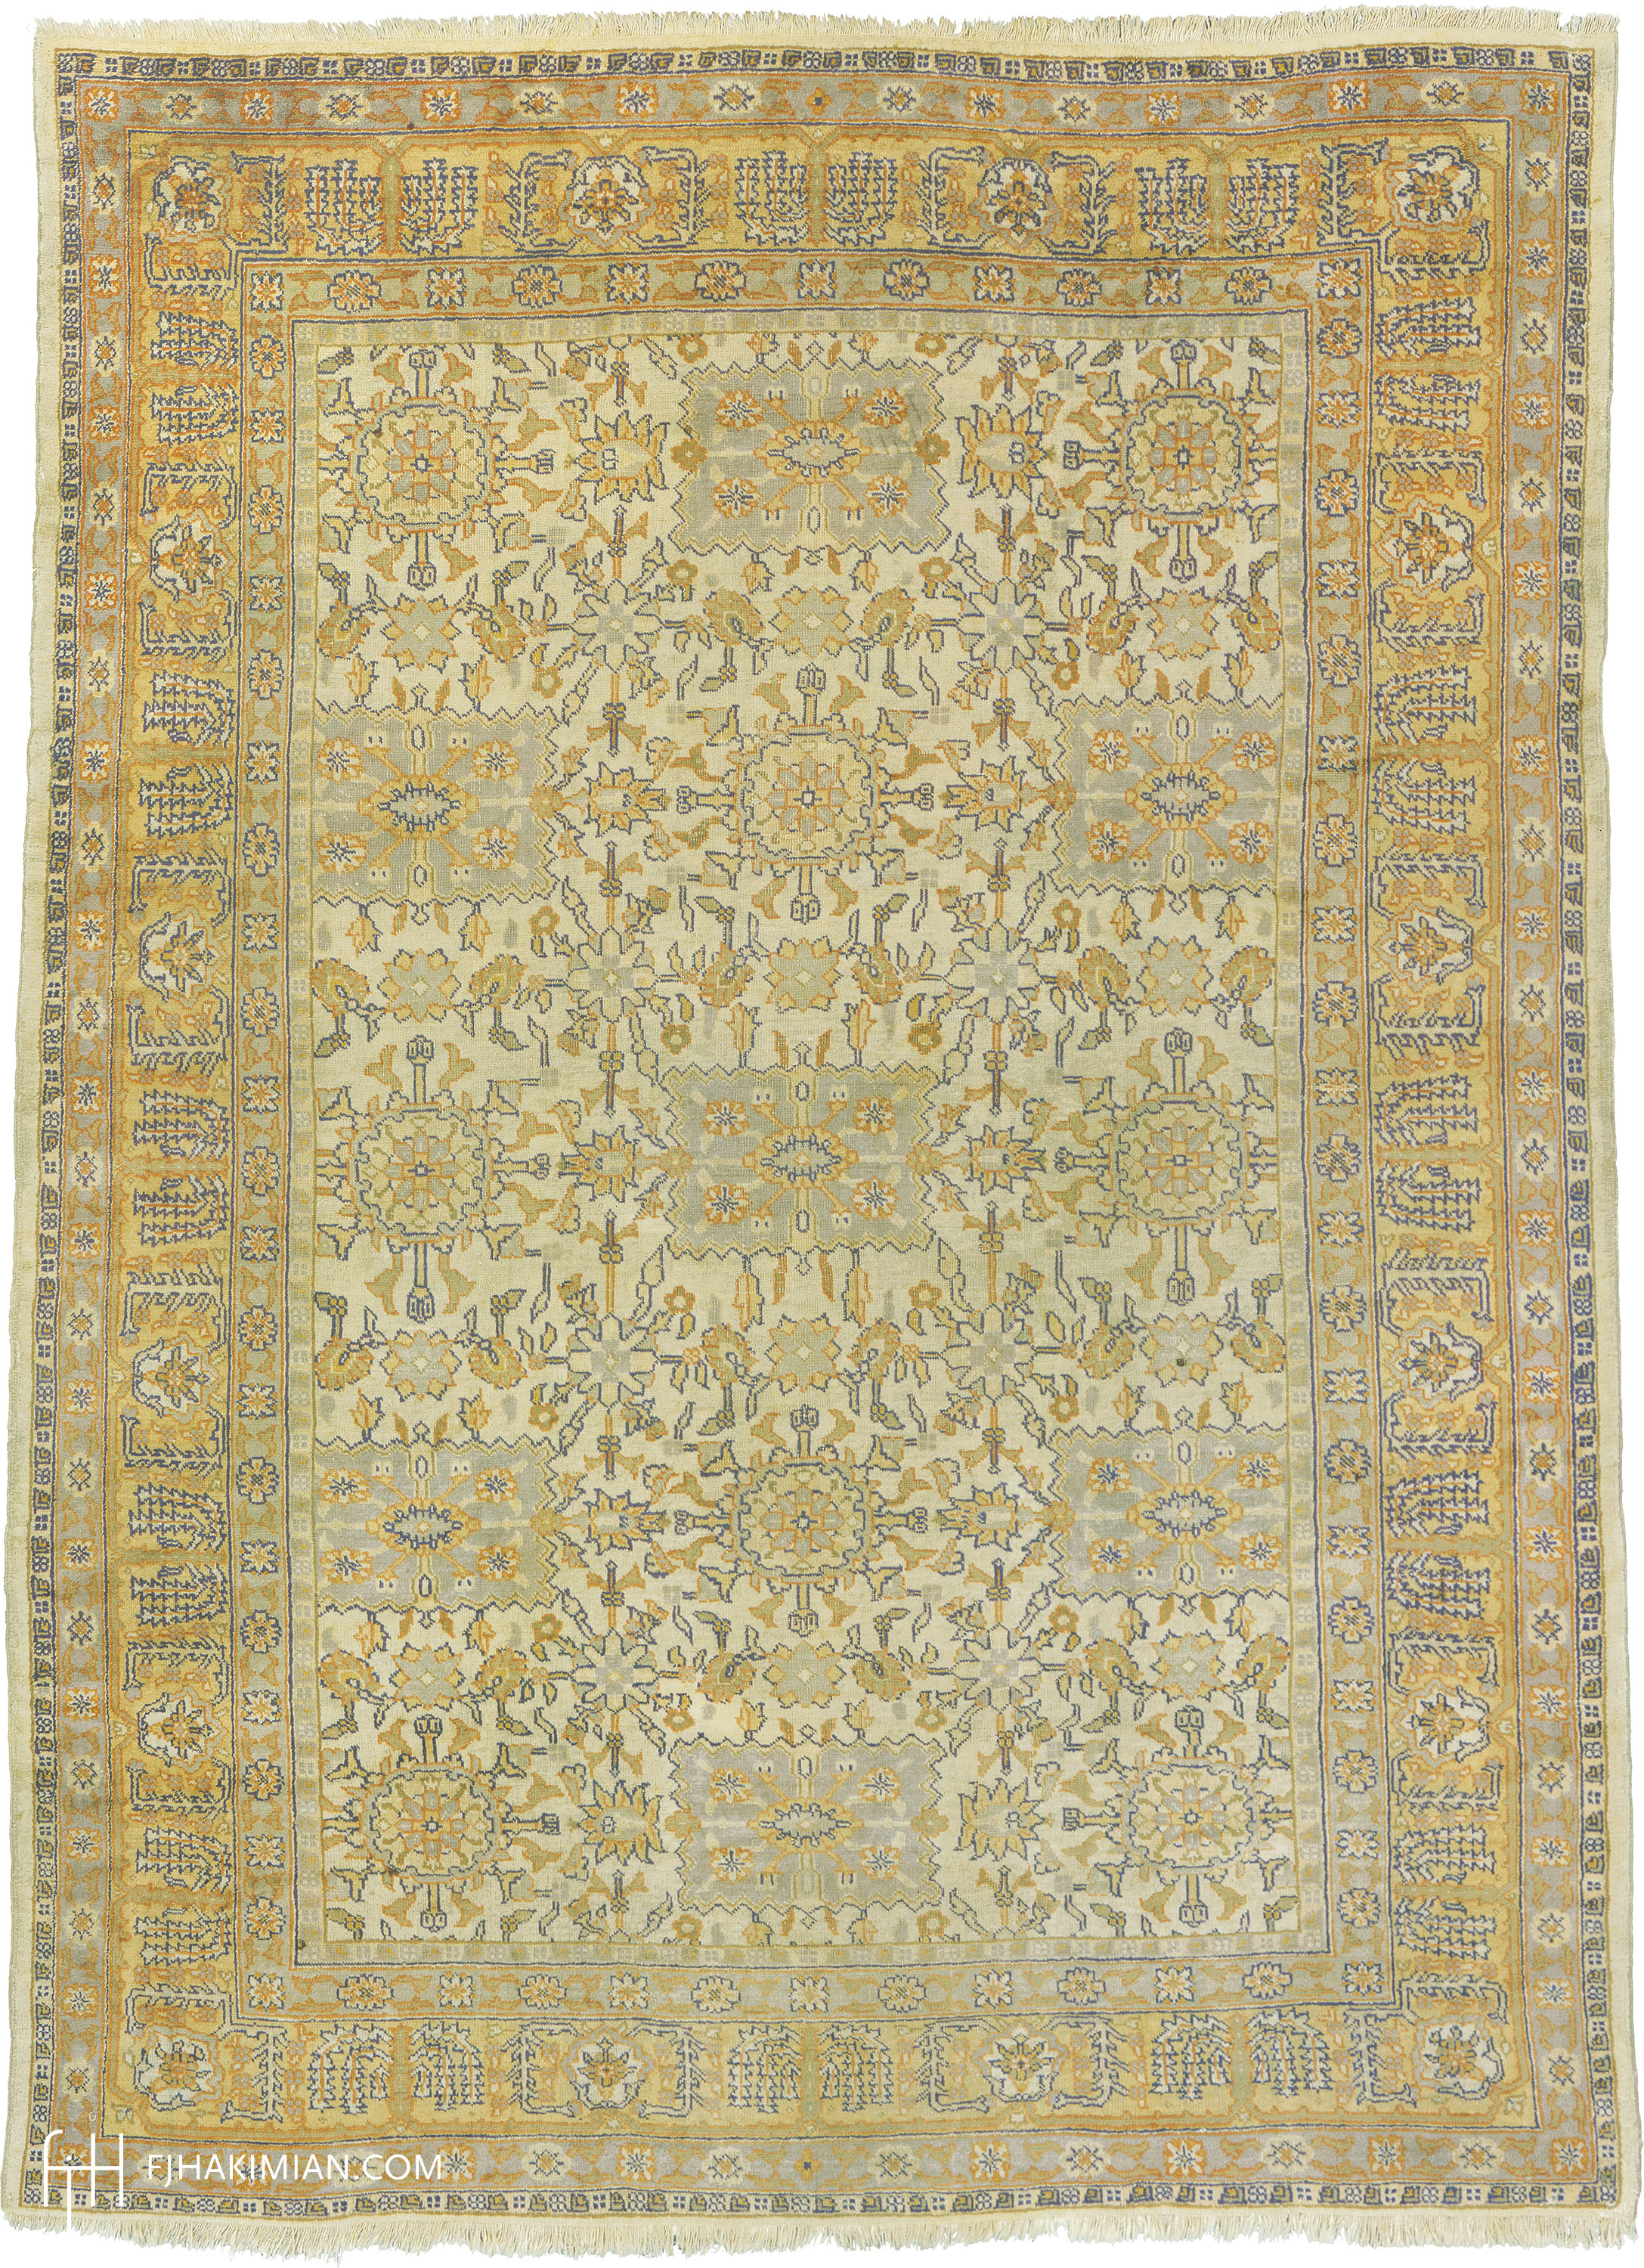 Turkish Oushak Rug #04150 | FJ Hakimian